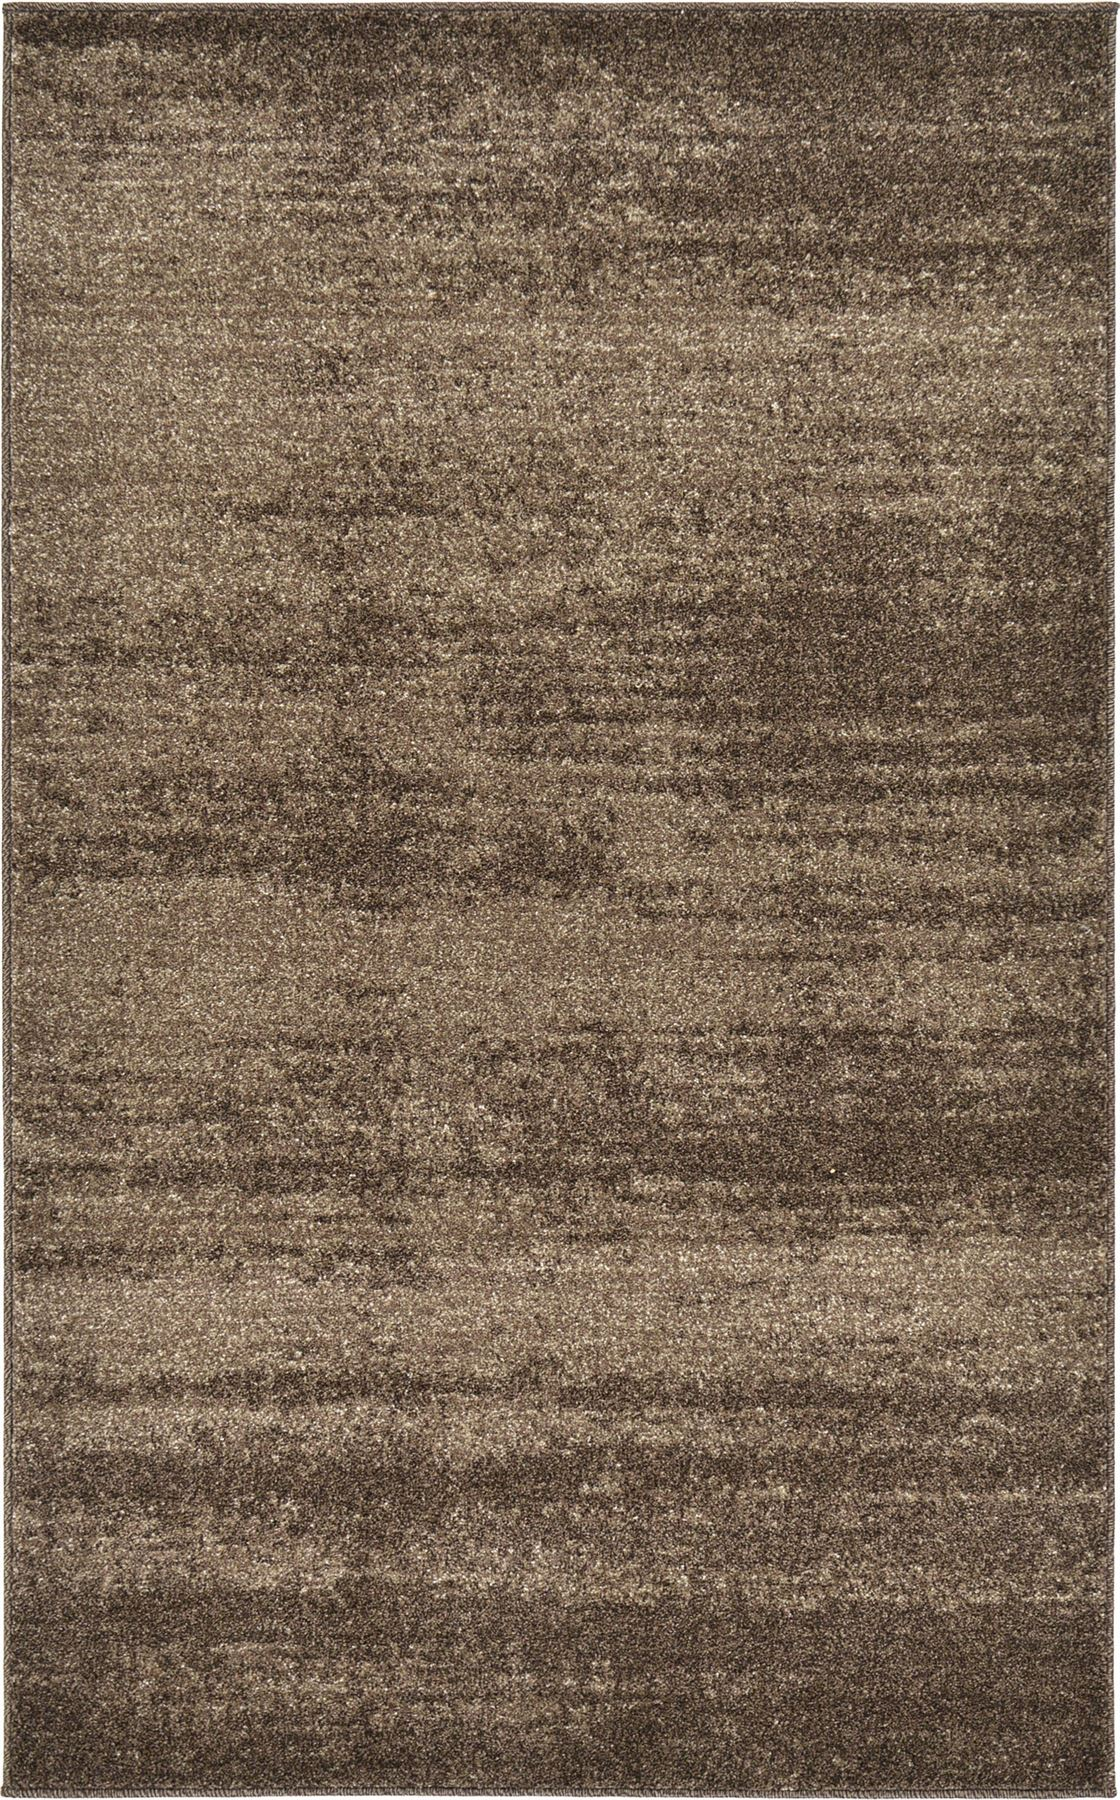 Modern Multi Colors Area Rug Solid Plain Contemporary Shag ... - photo#48